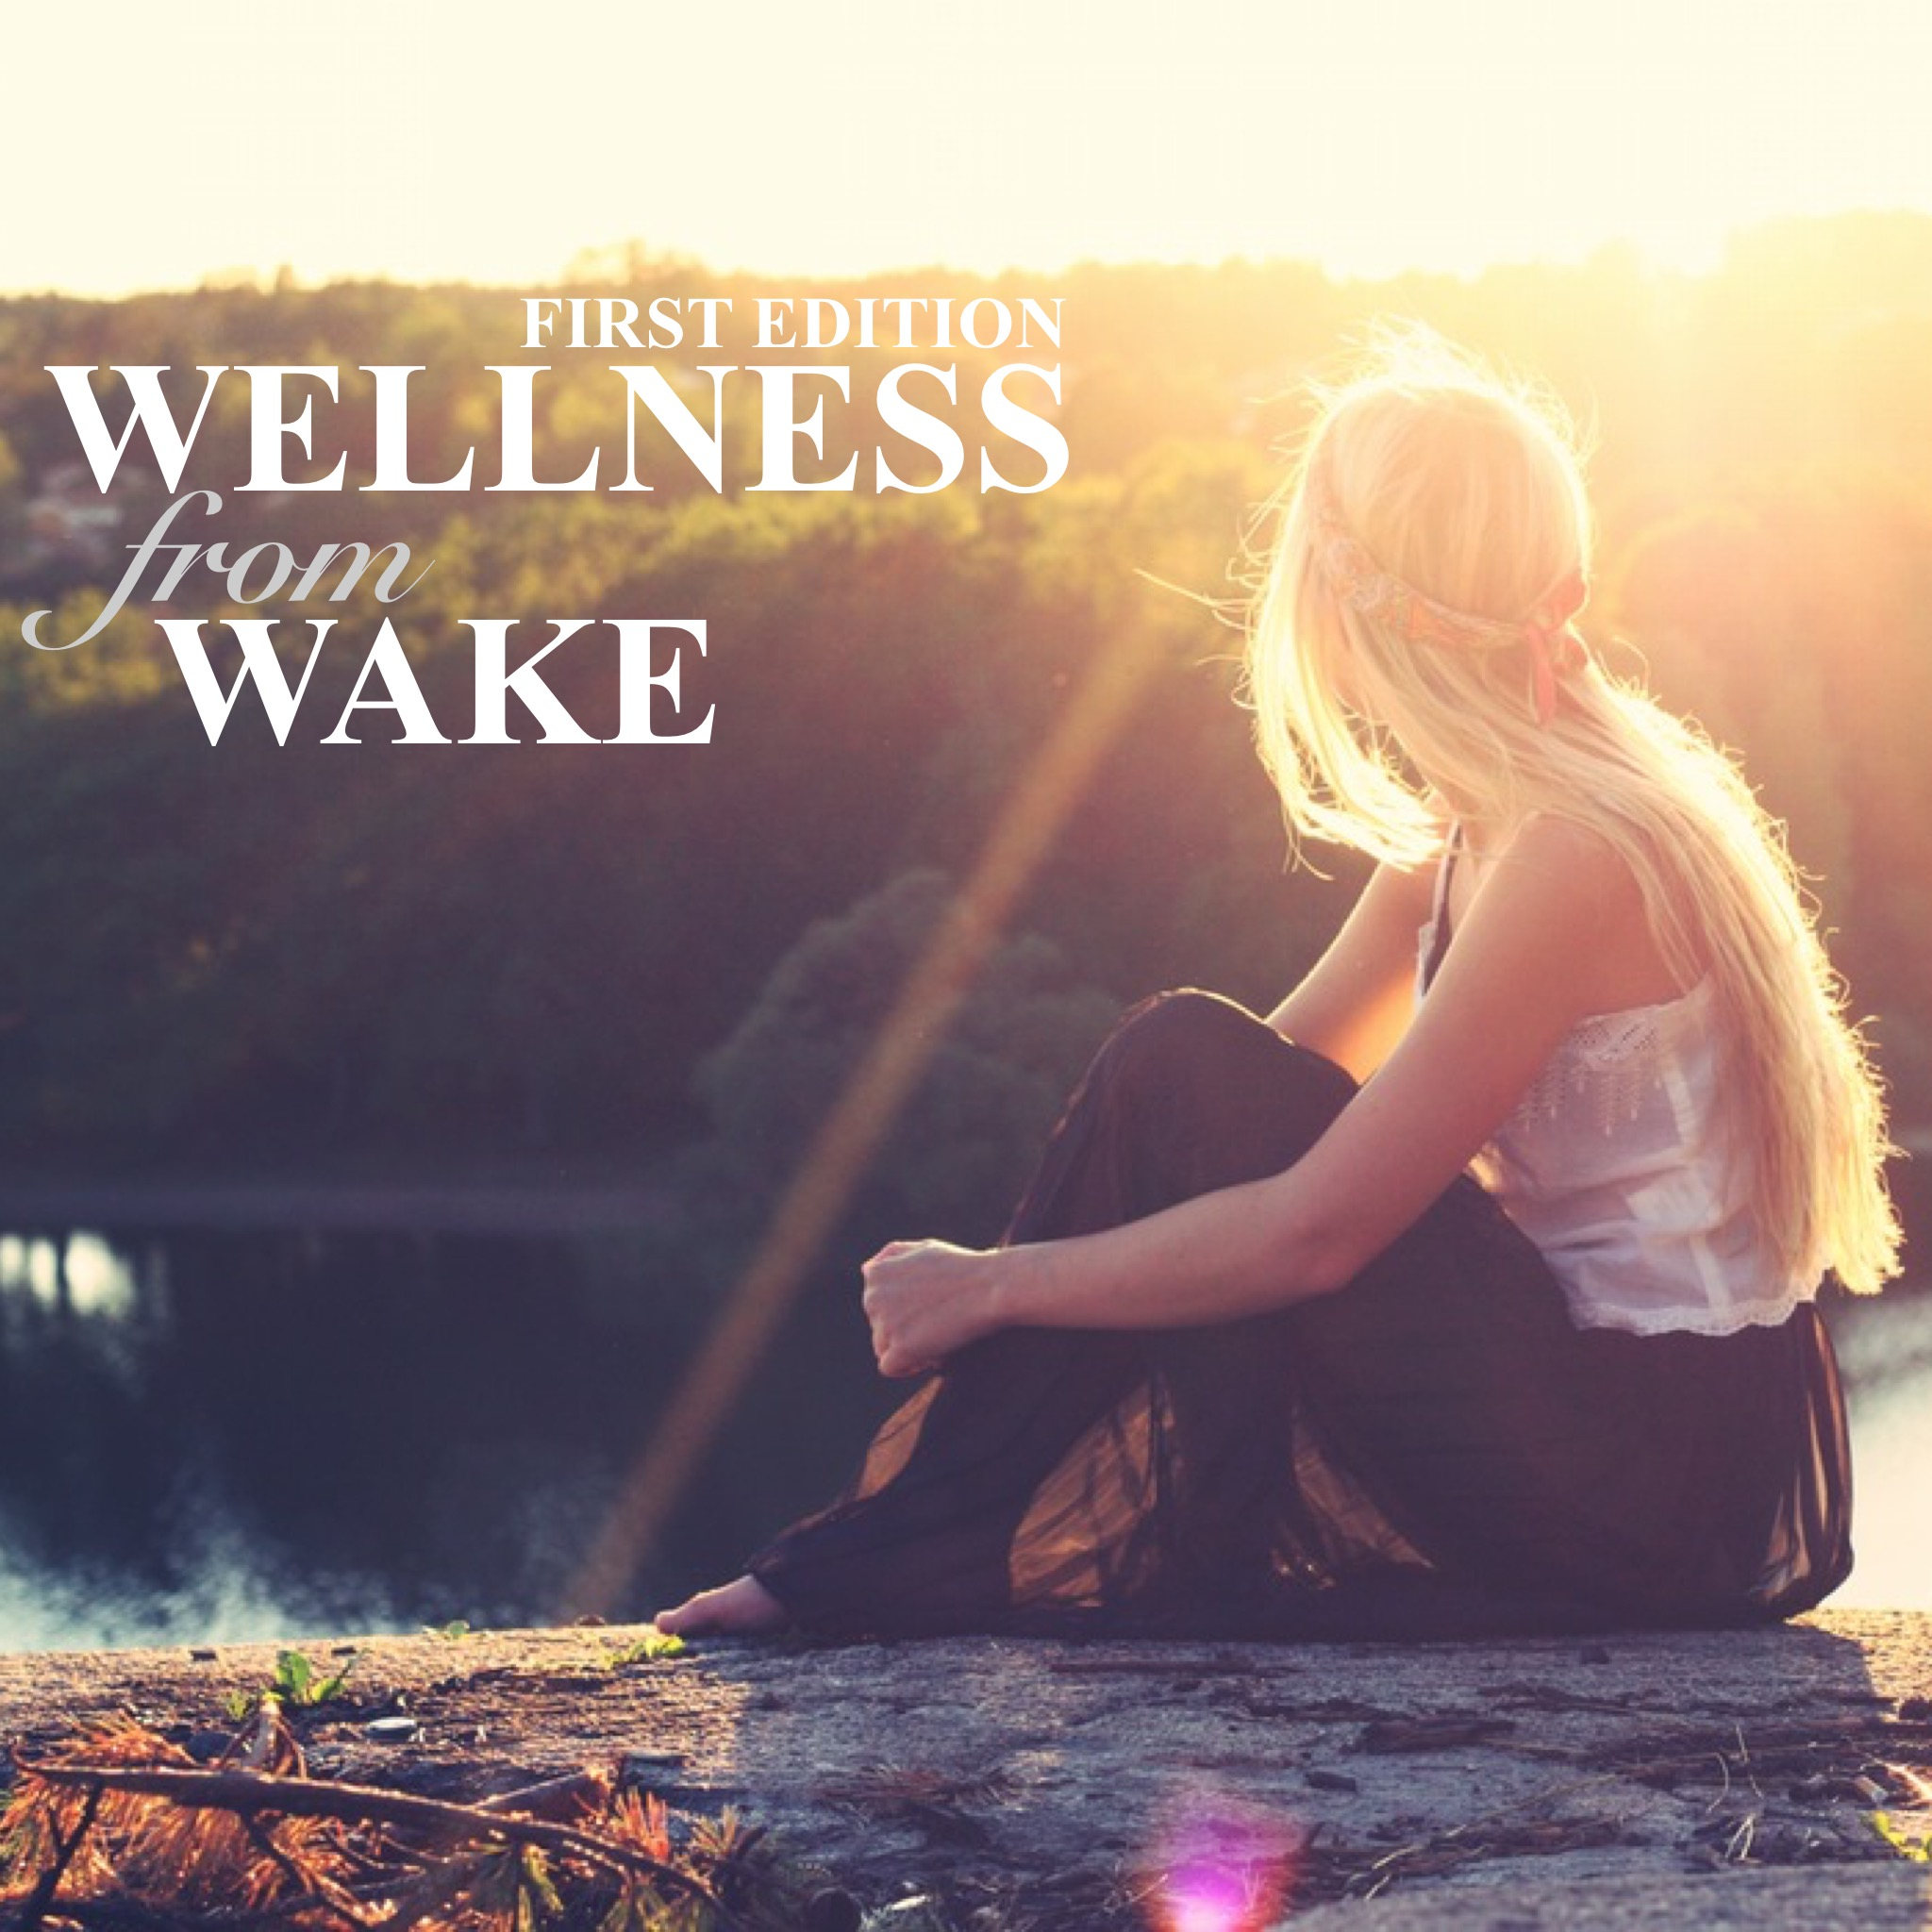 wellness-wake-1